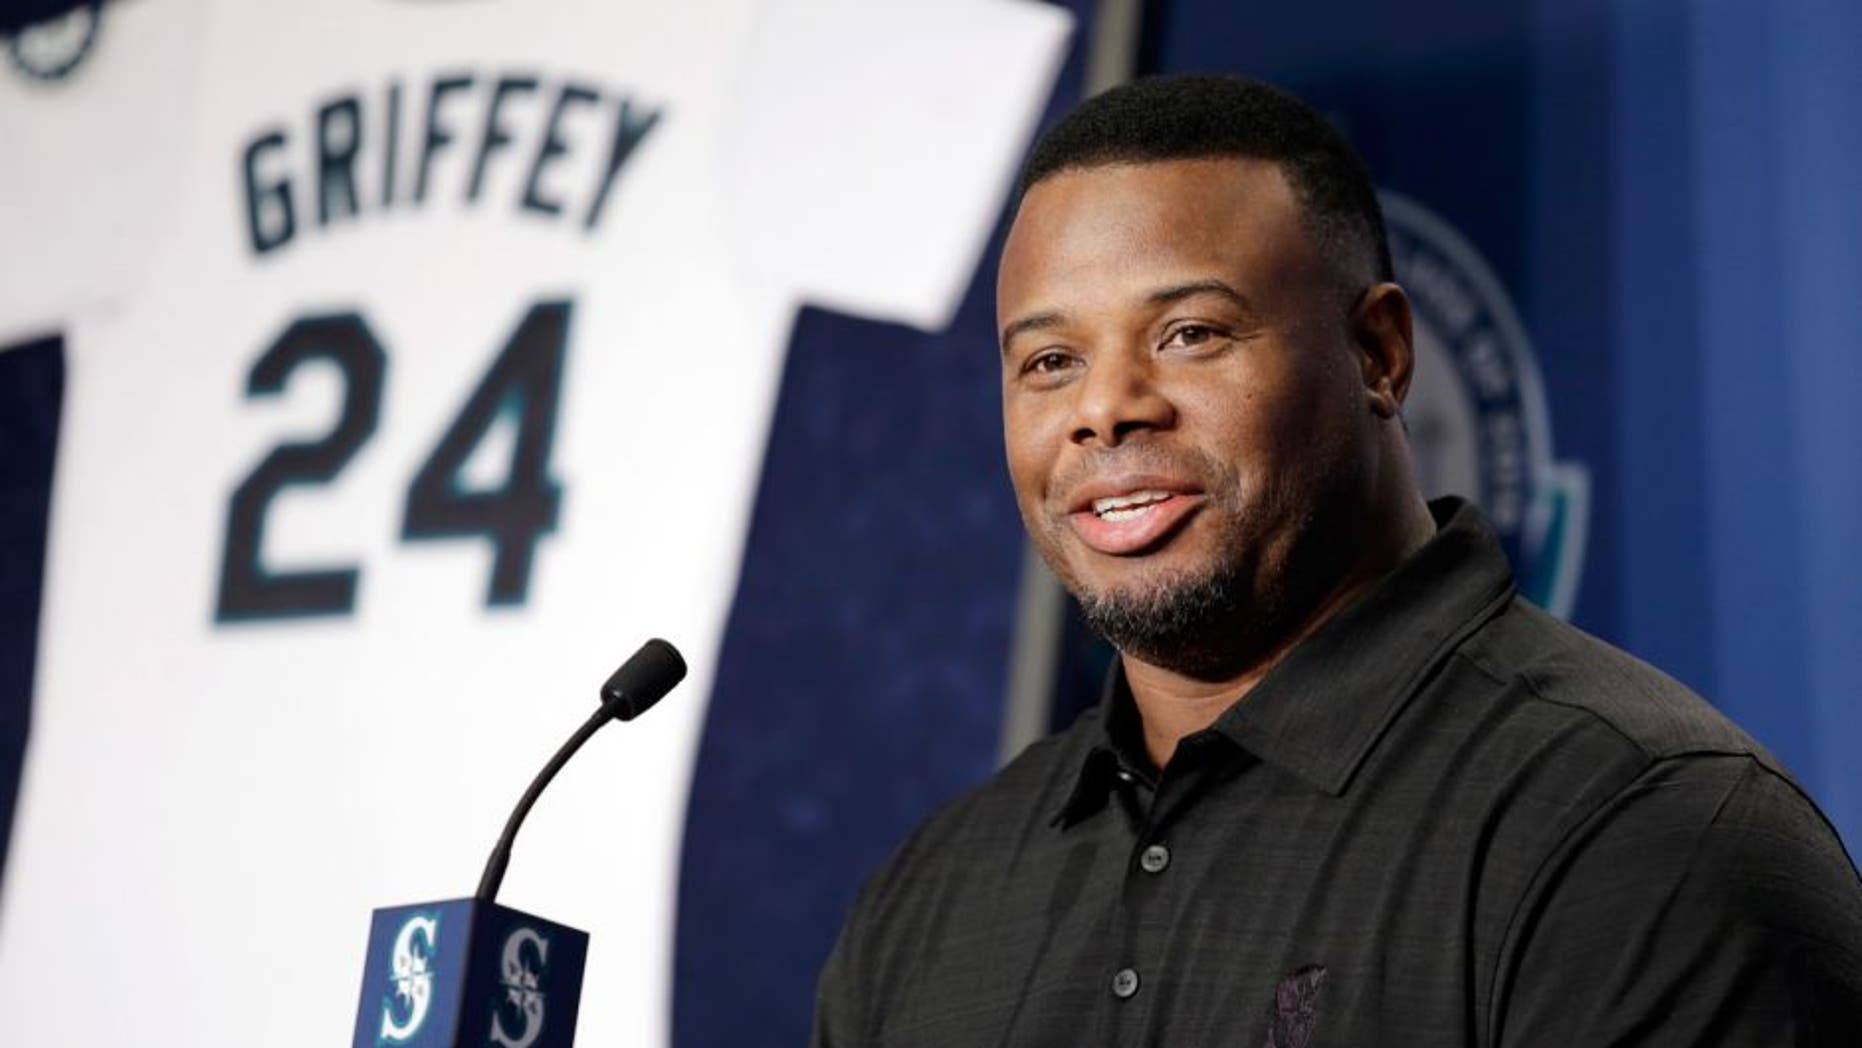 Ken Griffey Jr. speaks at a news conference Friday, Jan. 8, 2016, in Seattle. Griffey's Hall of Fame whirlwind came back to where it all started, when he spoke at Safeco Field, the stadium built in part because of him. (AP Photo/Elaine Thompson)